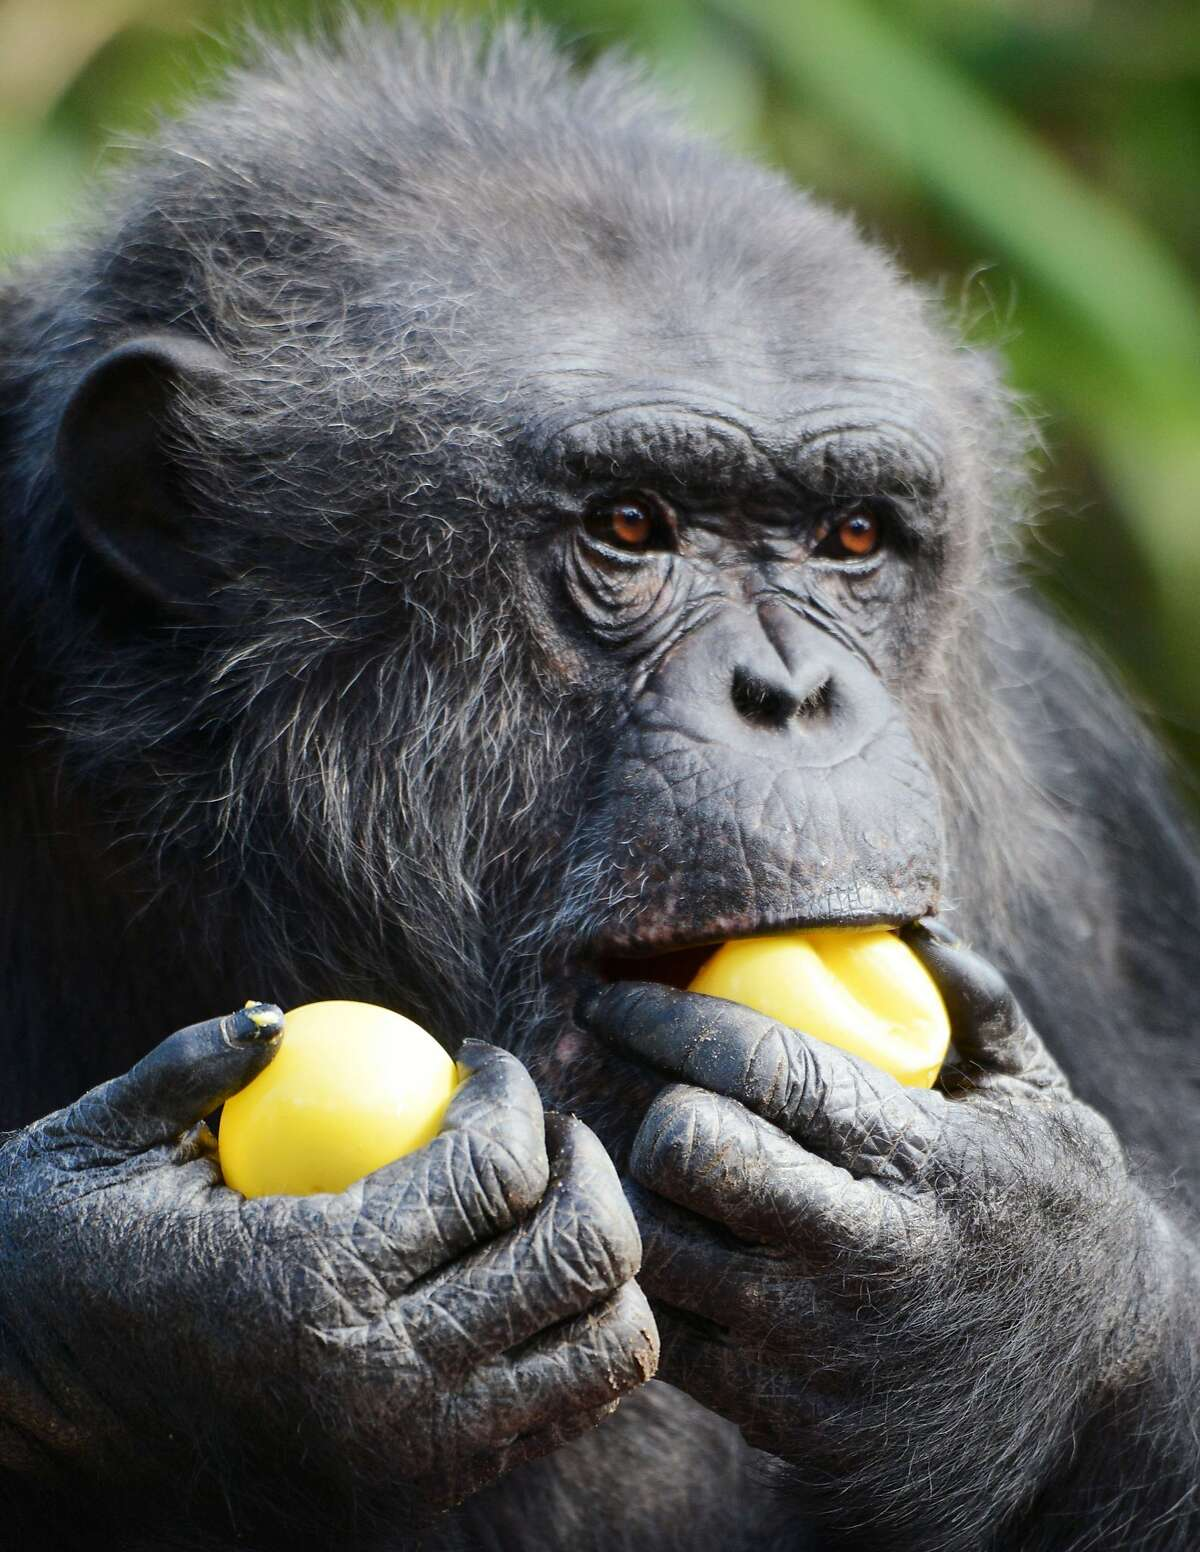 A chimpanzee looks for its treat after opening a wrapped plastic egg on Easter at the zoo in La Fleche, western France, on April 5, 2015. AFP PHOTO / JEAN-FRANCOIS MONIERJEAN-FRANCOIS MONIER/AFP/Getty Images